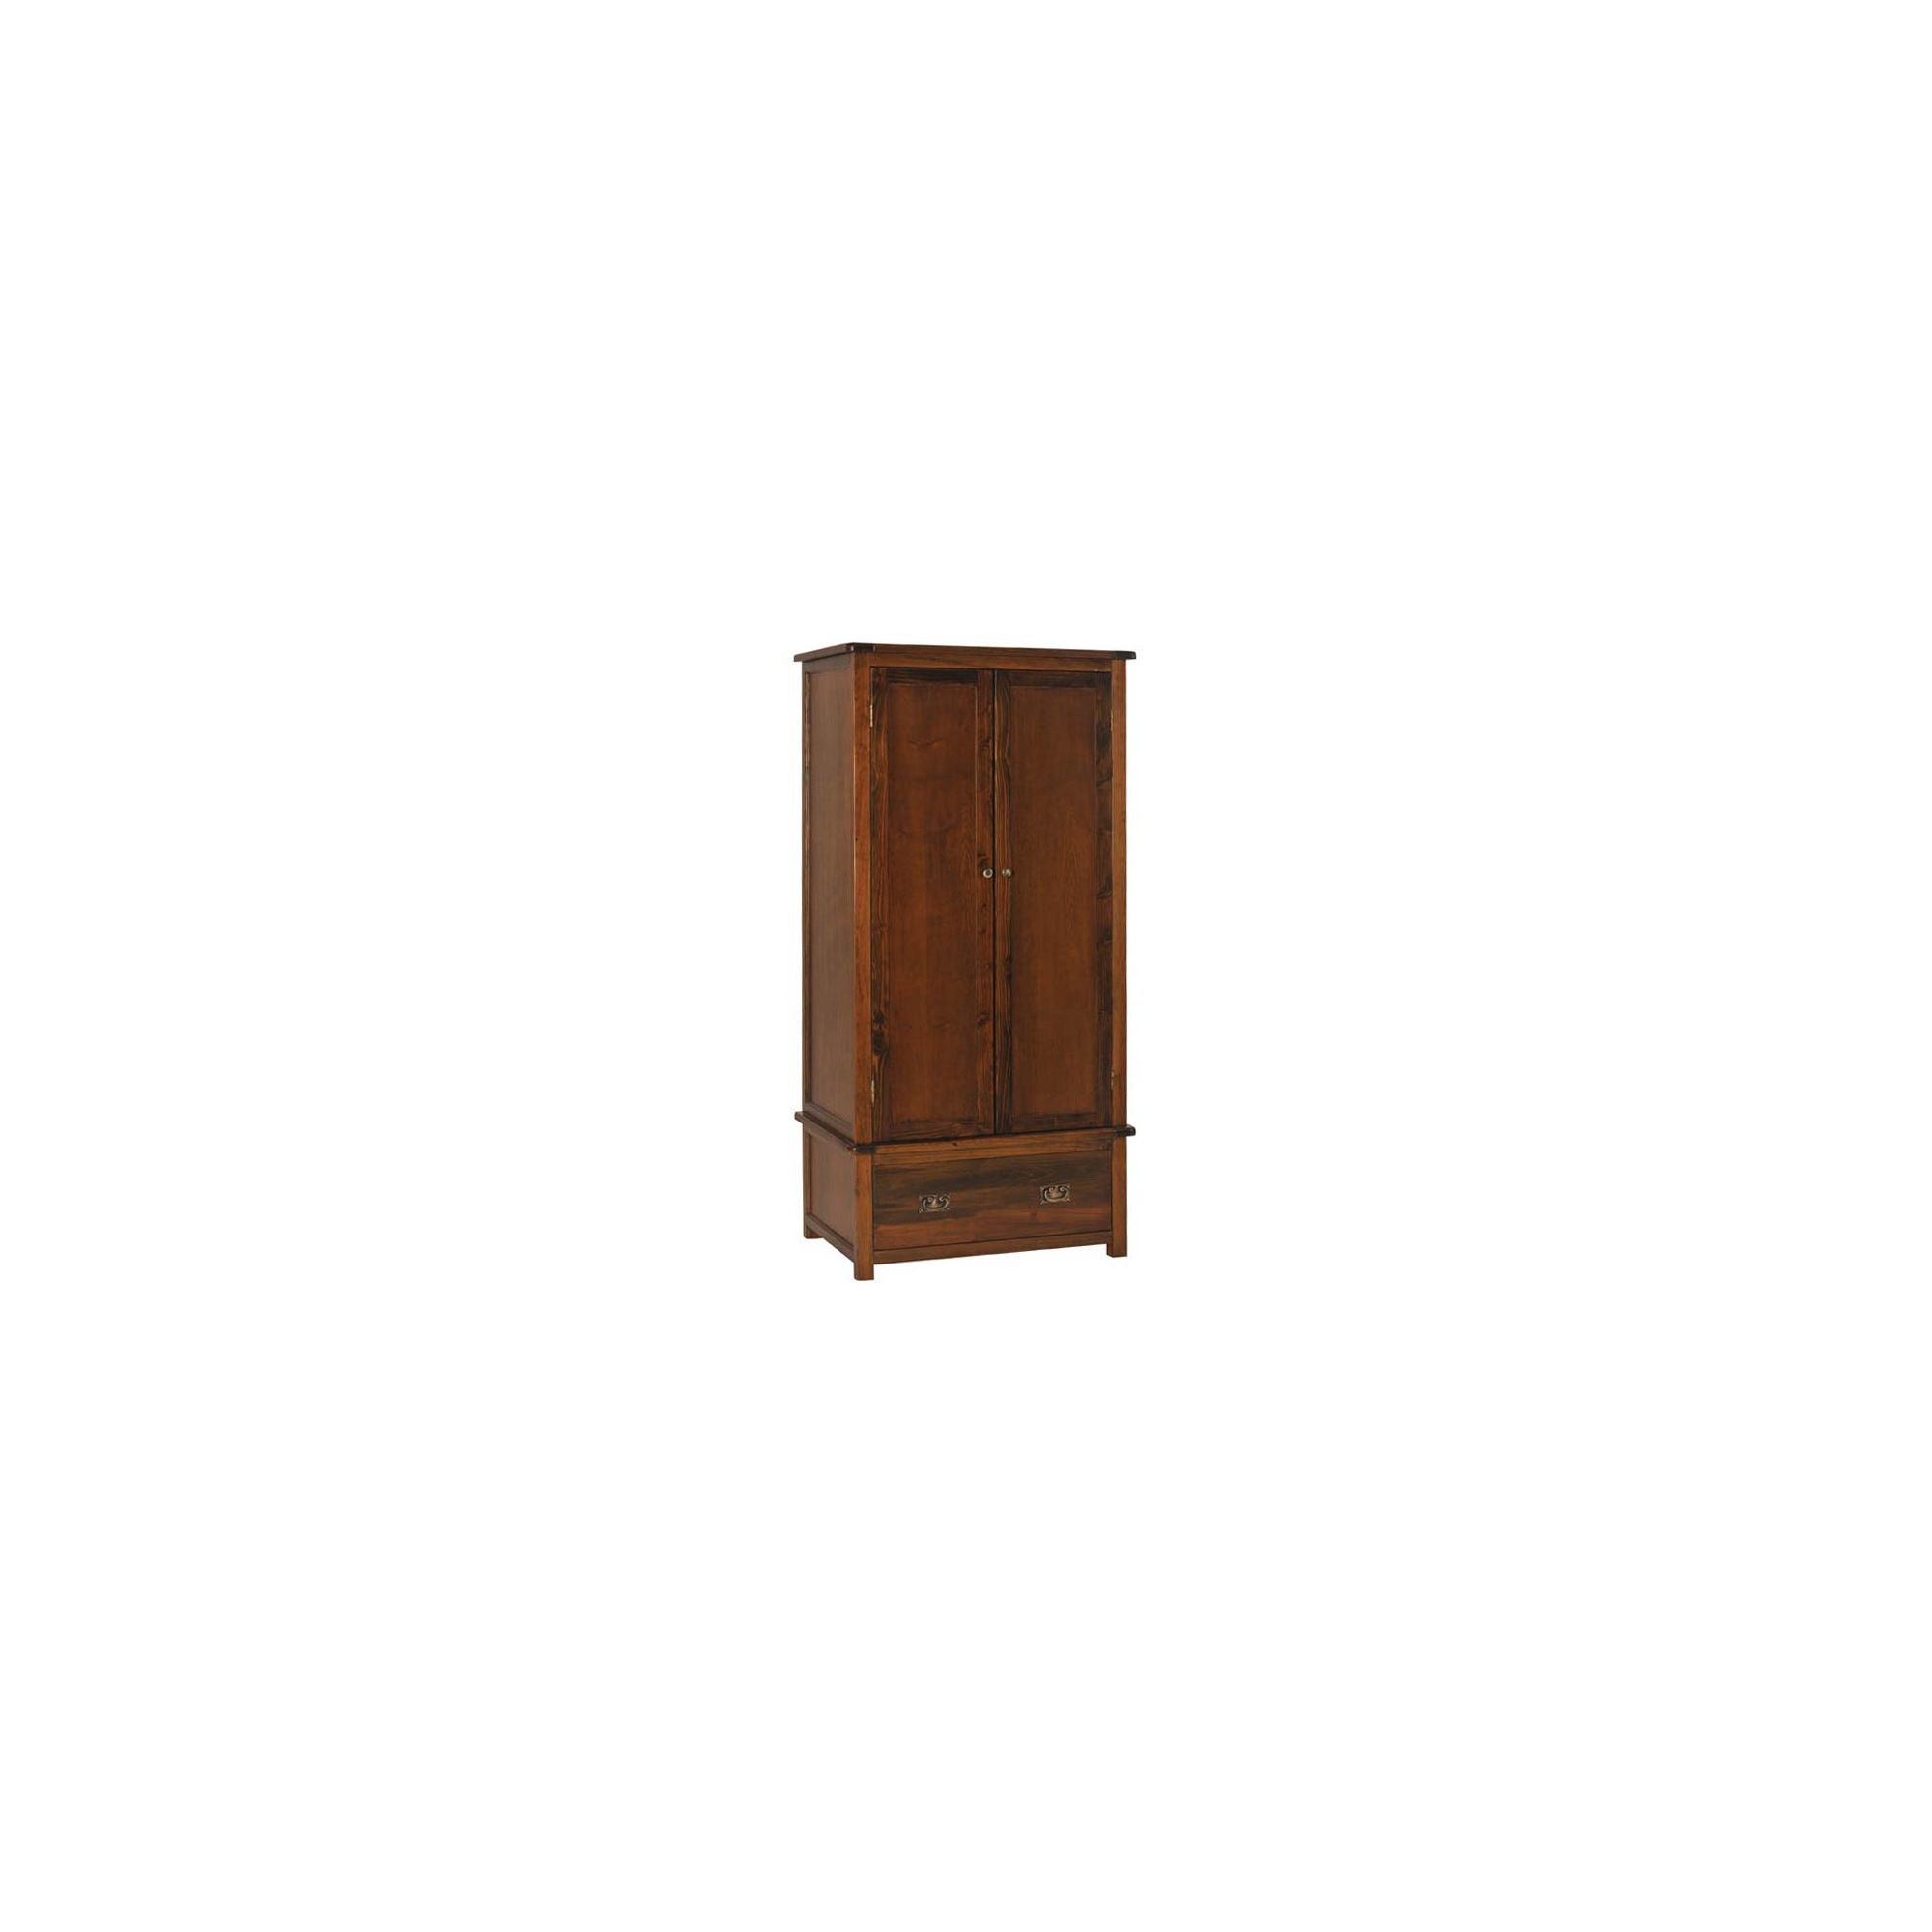 Home Essence Broadwick 2 Door and 1 Drawer Wardrobe at Tesco Direct